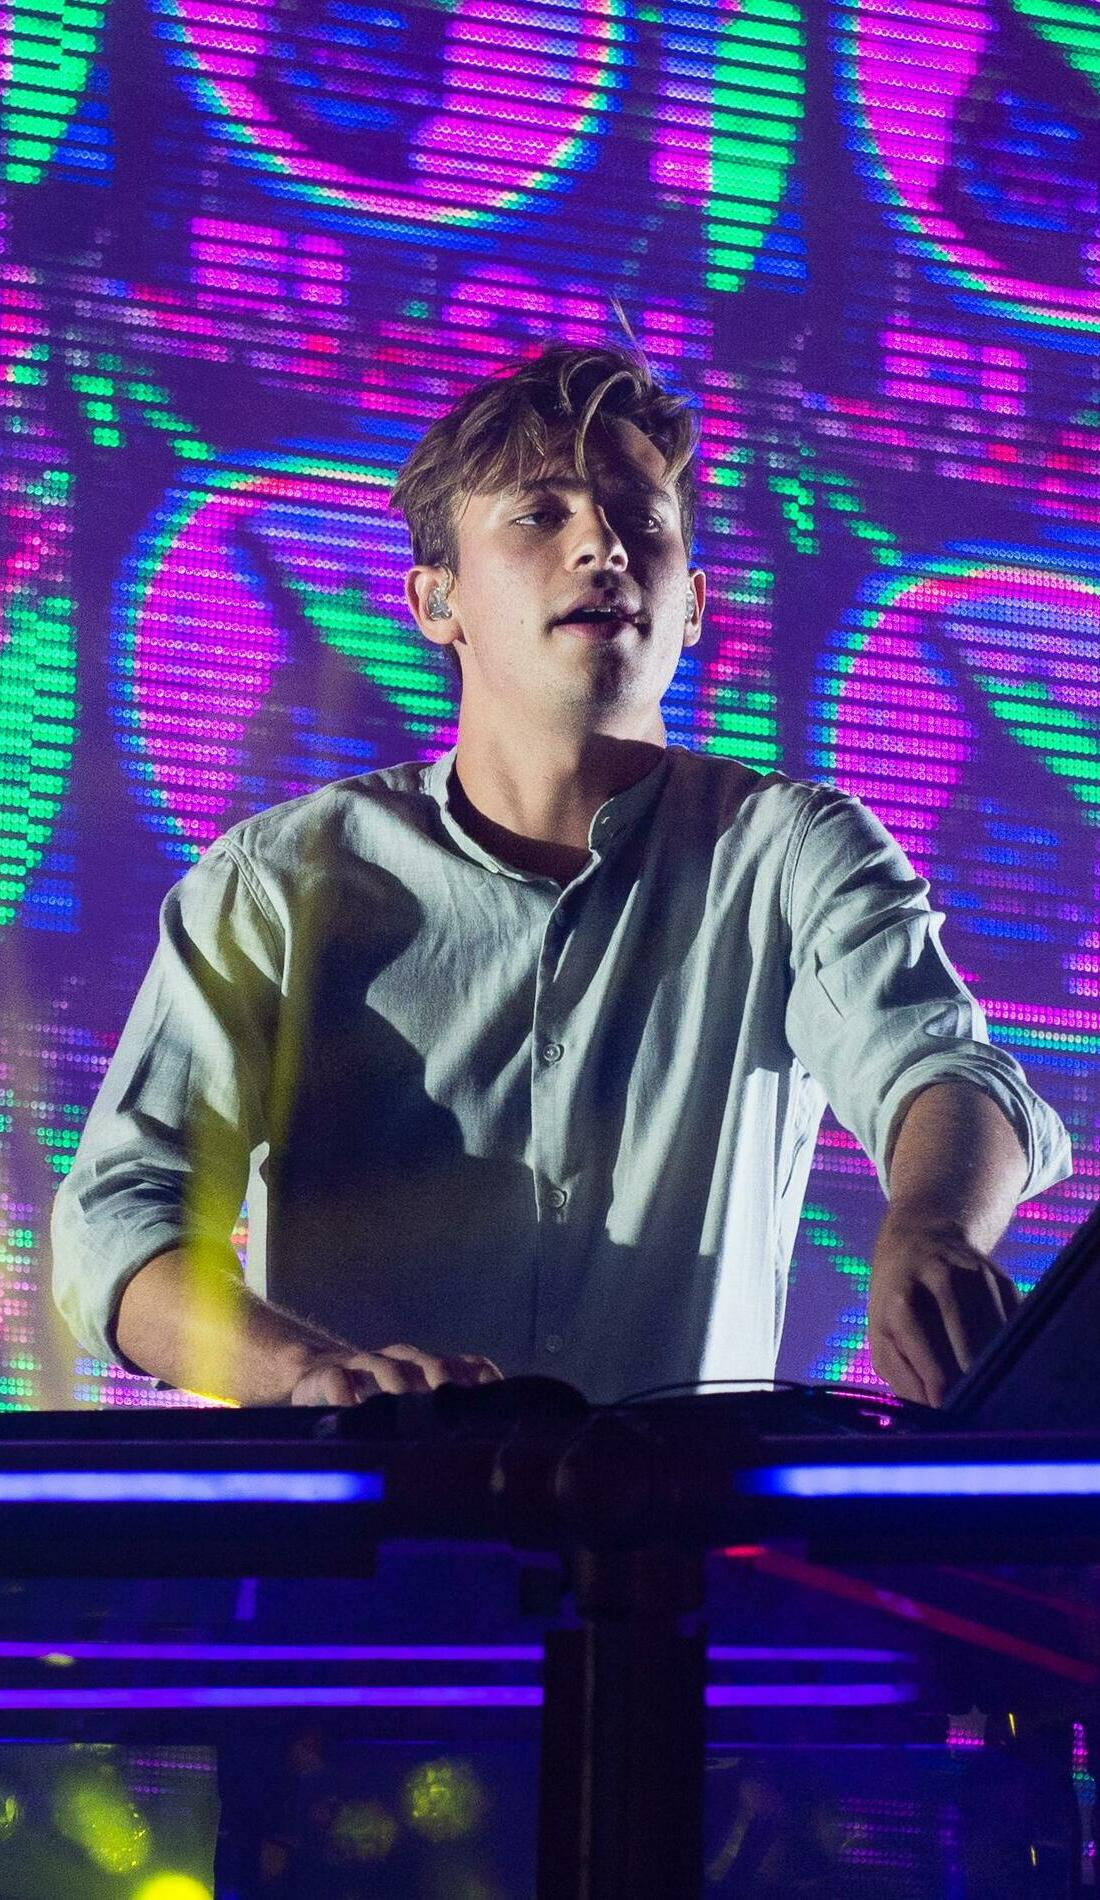 A Flume live event